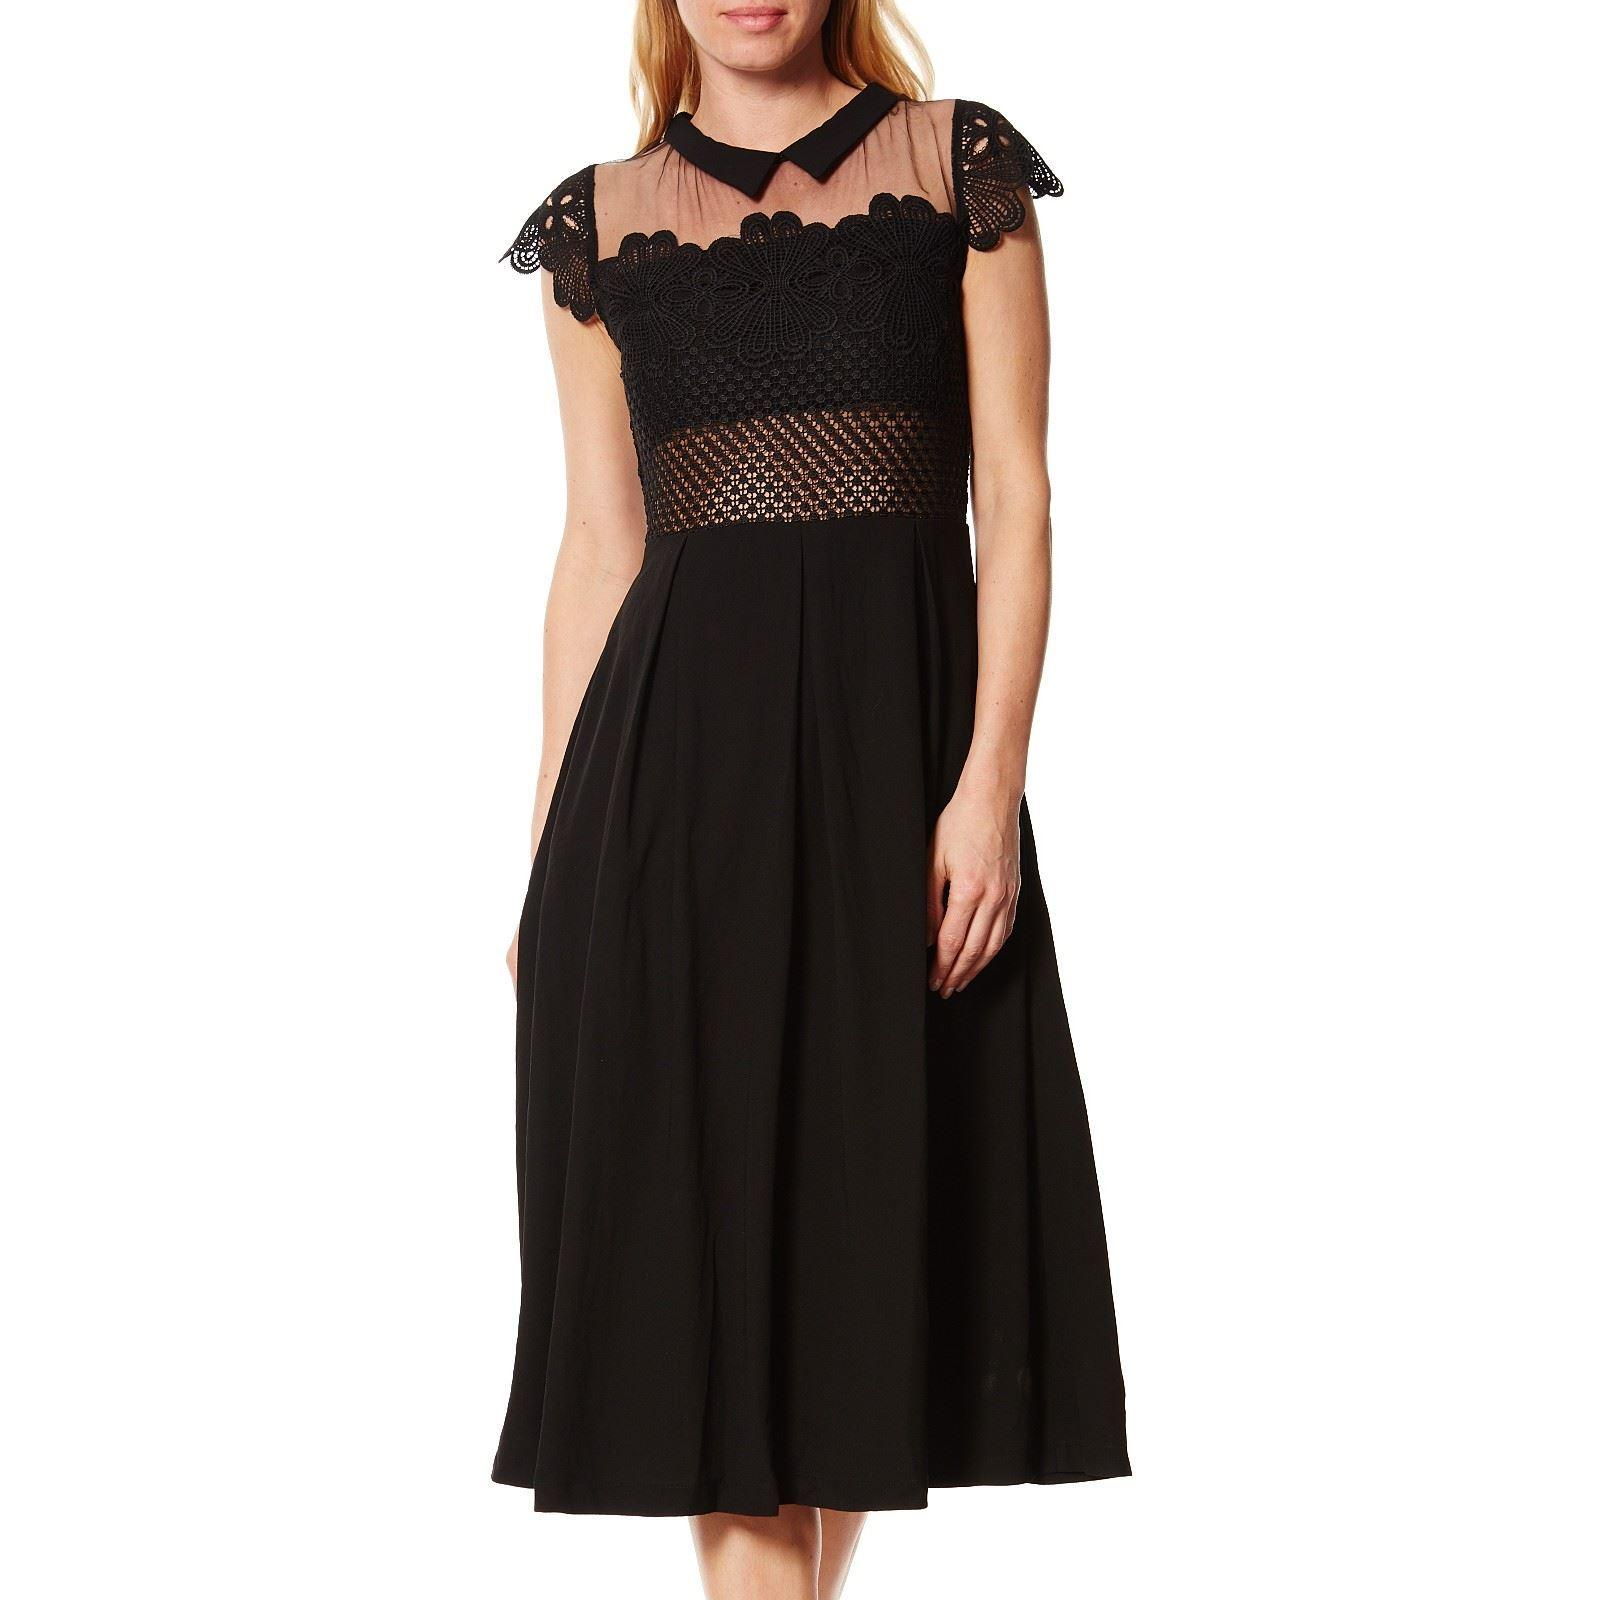 Robe noir molly bracken